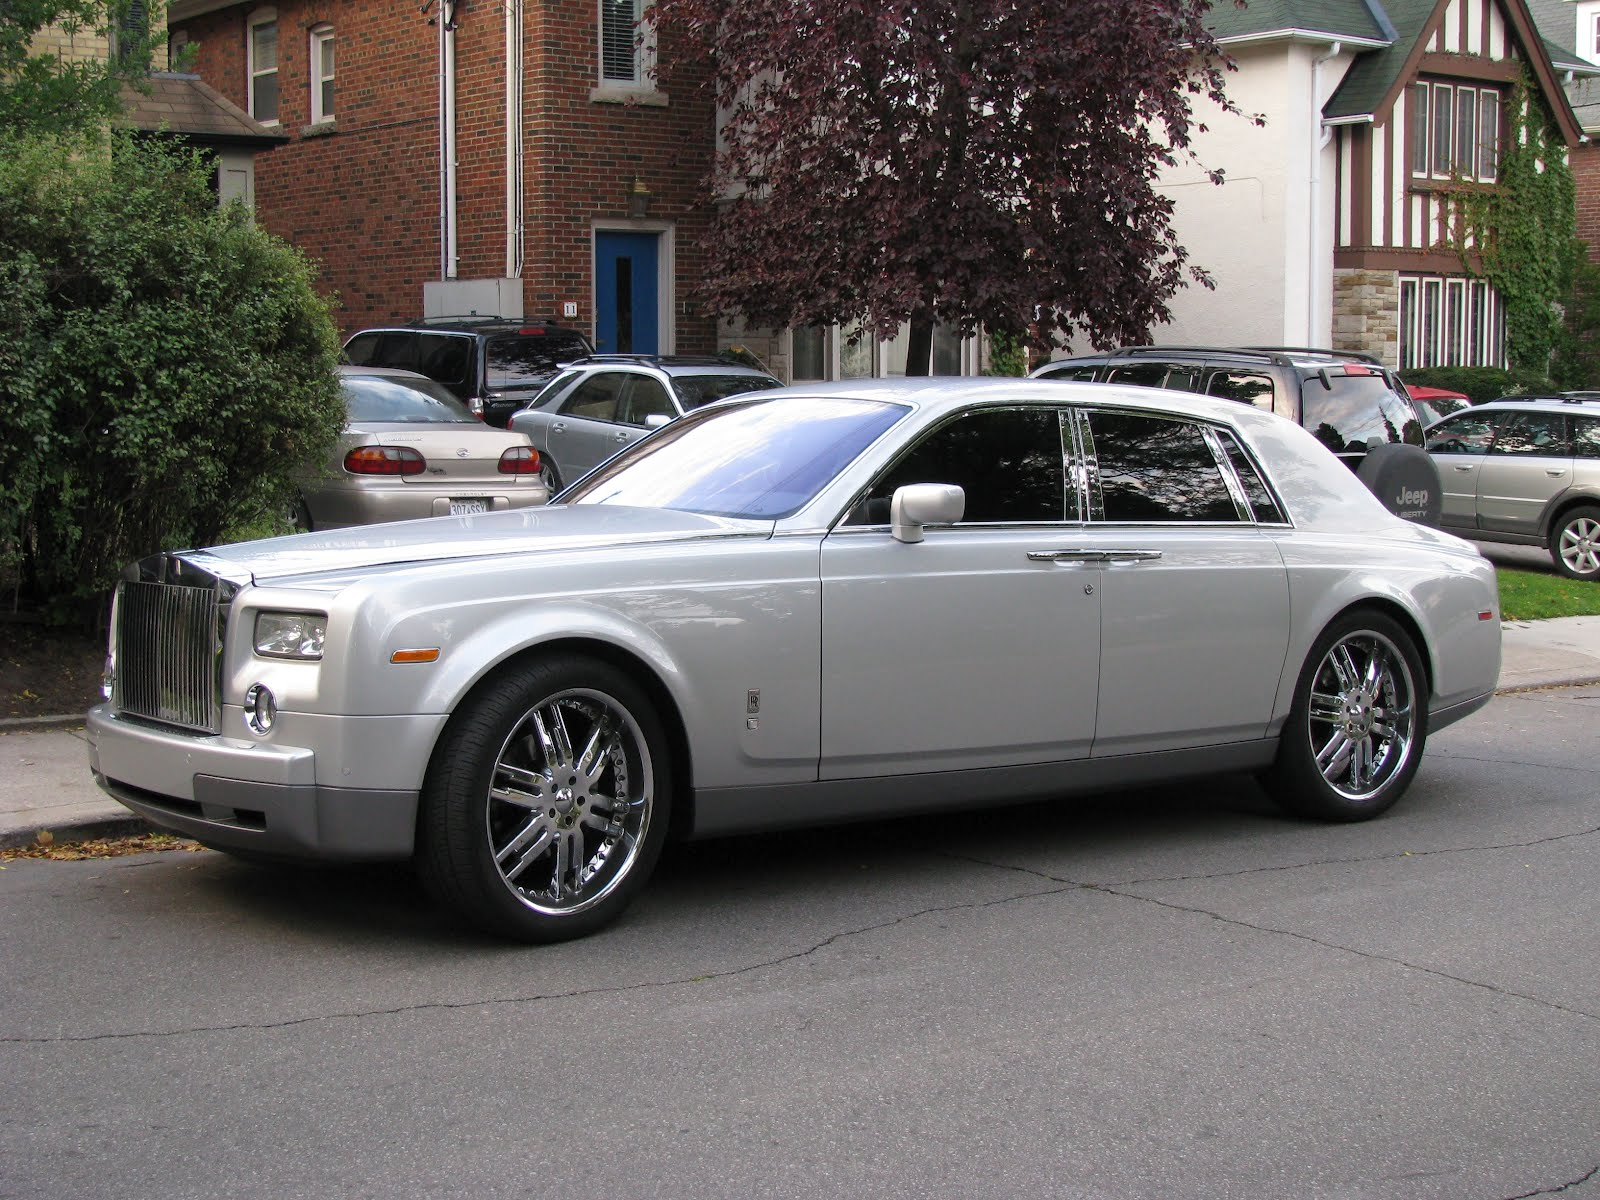 wheels up for car own windsor bentley by your mulsanne chance sale queens culture to is s features queen the